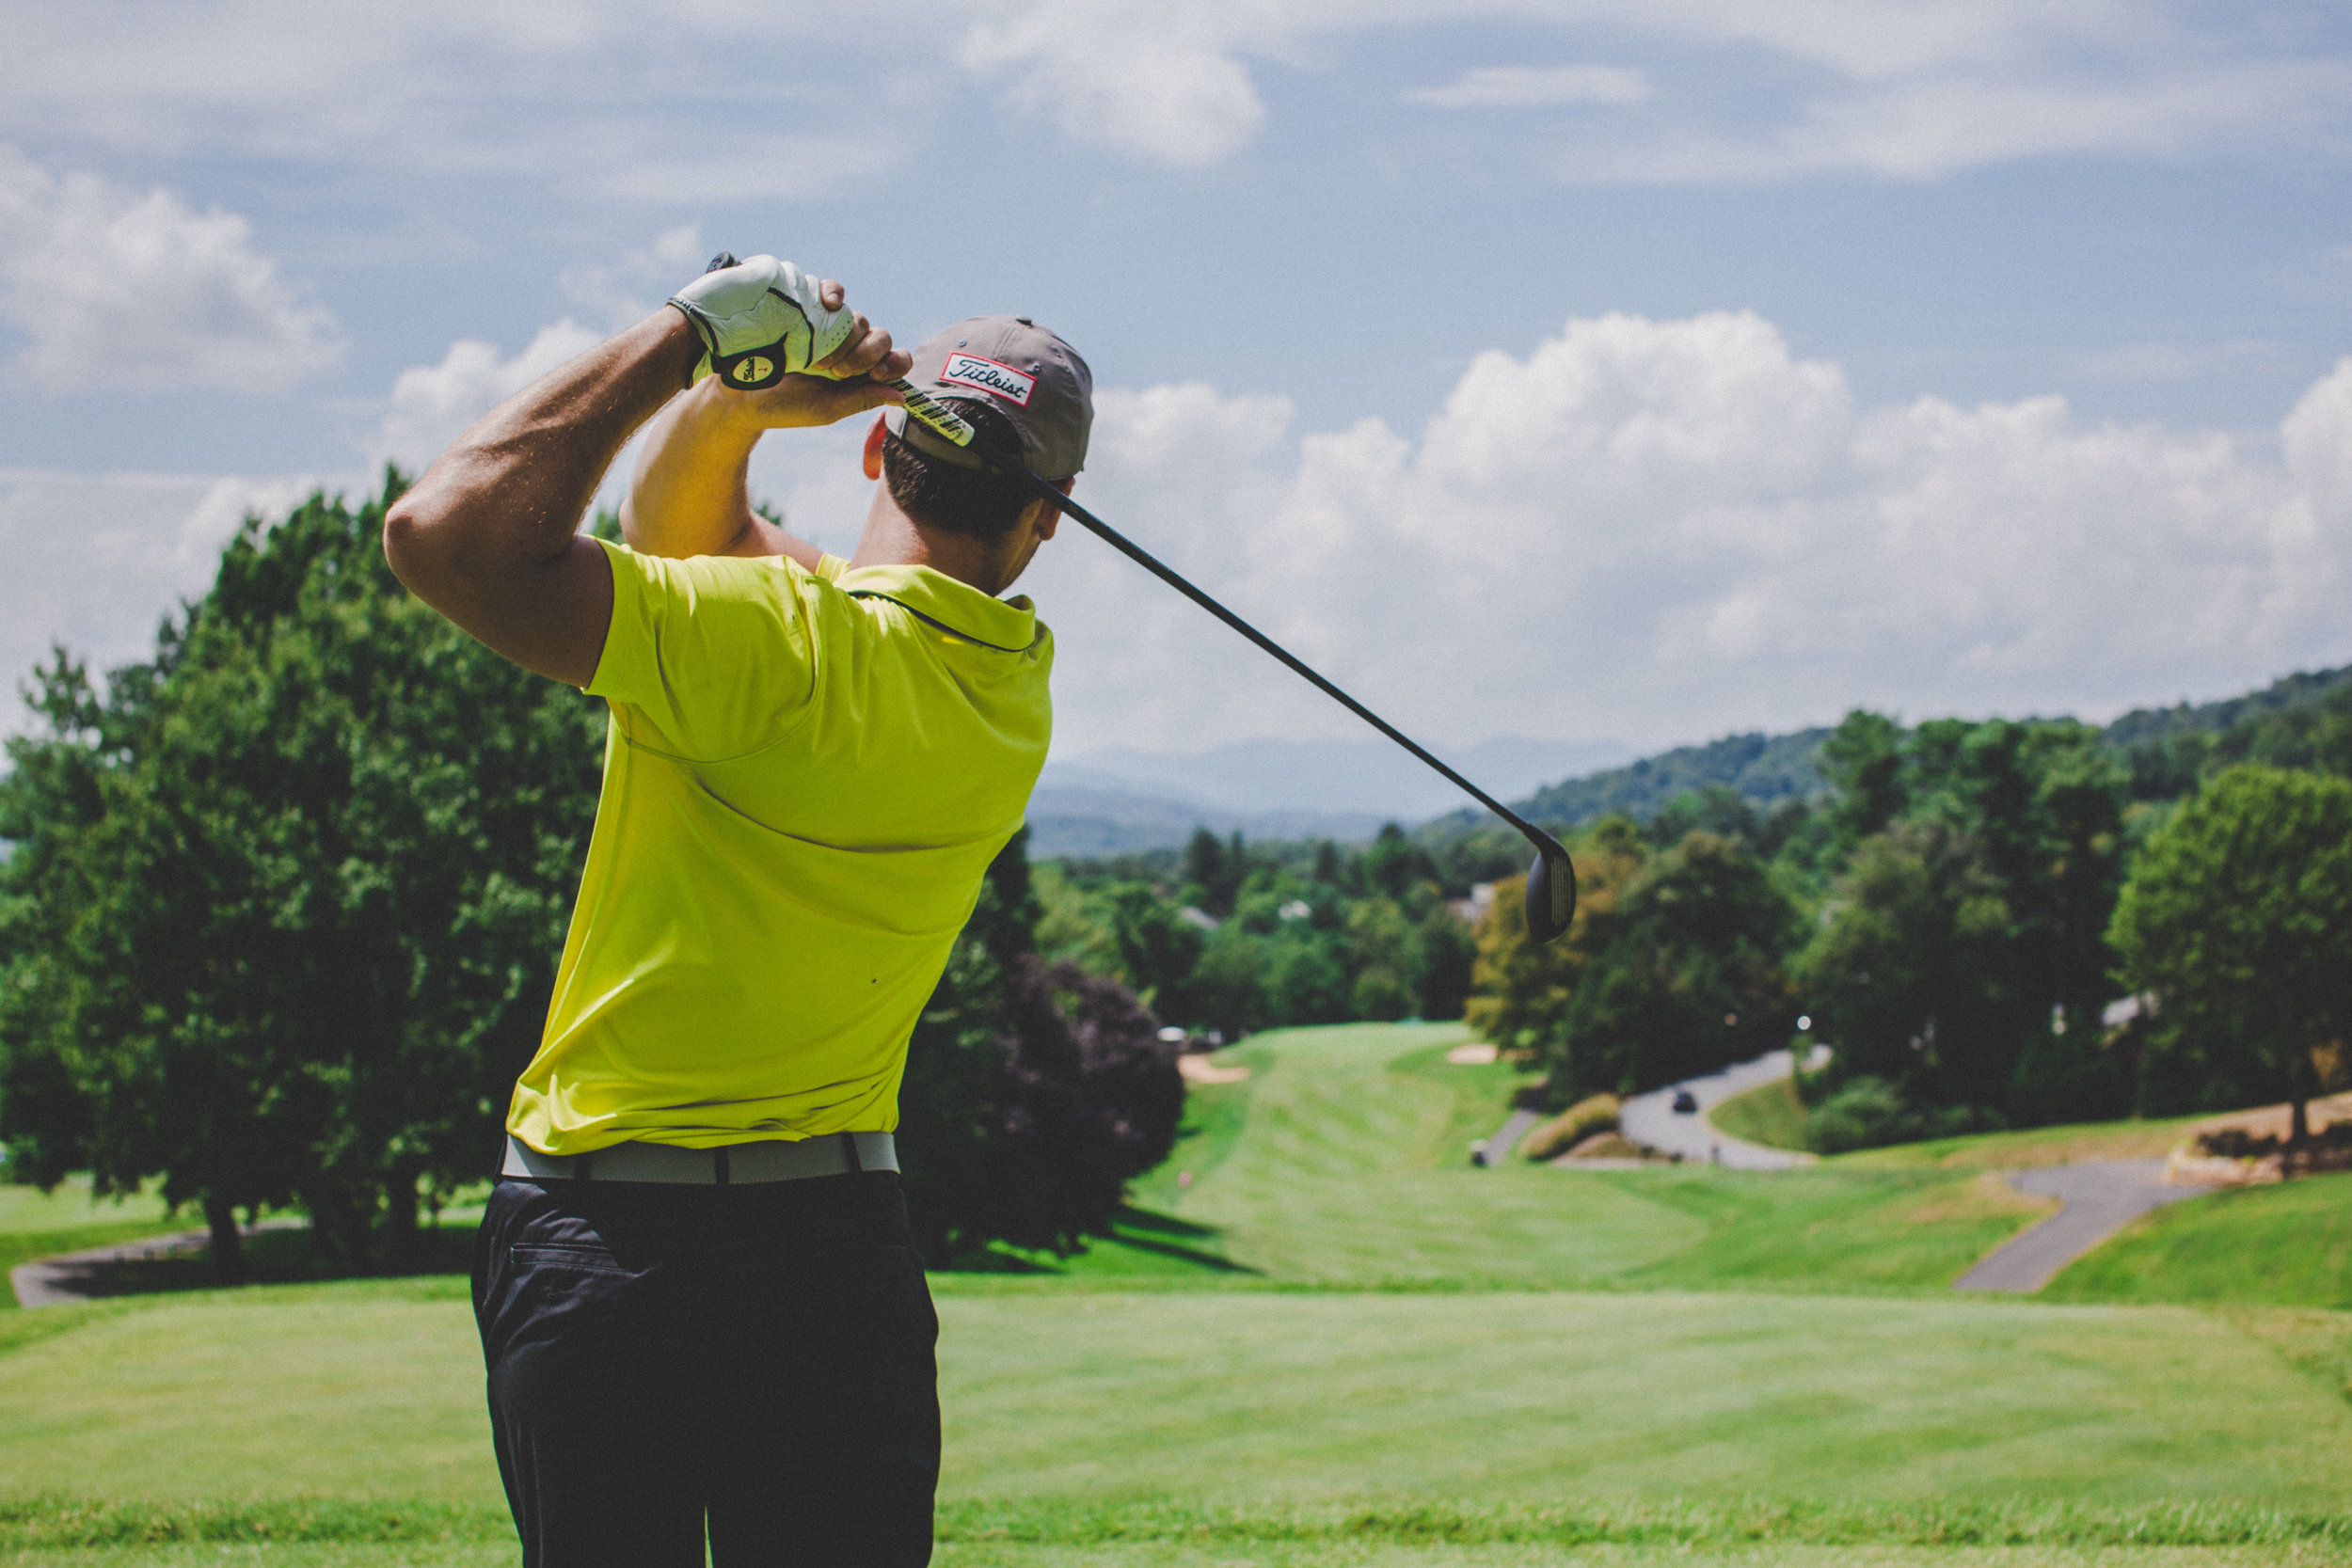 Everyone Wants to Shoot Lower Scores. I Can Help. - •PGA Clients include Brian Harman, Billy Horschel, Patton Kizzire, Graeme McDowell, Jon Rahm, and more!•$17+ Million earned by PGA Tour clients during 2017-2018 season•Clients Won 5x on the PGA Tour during the 2017-2018 season.